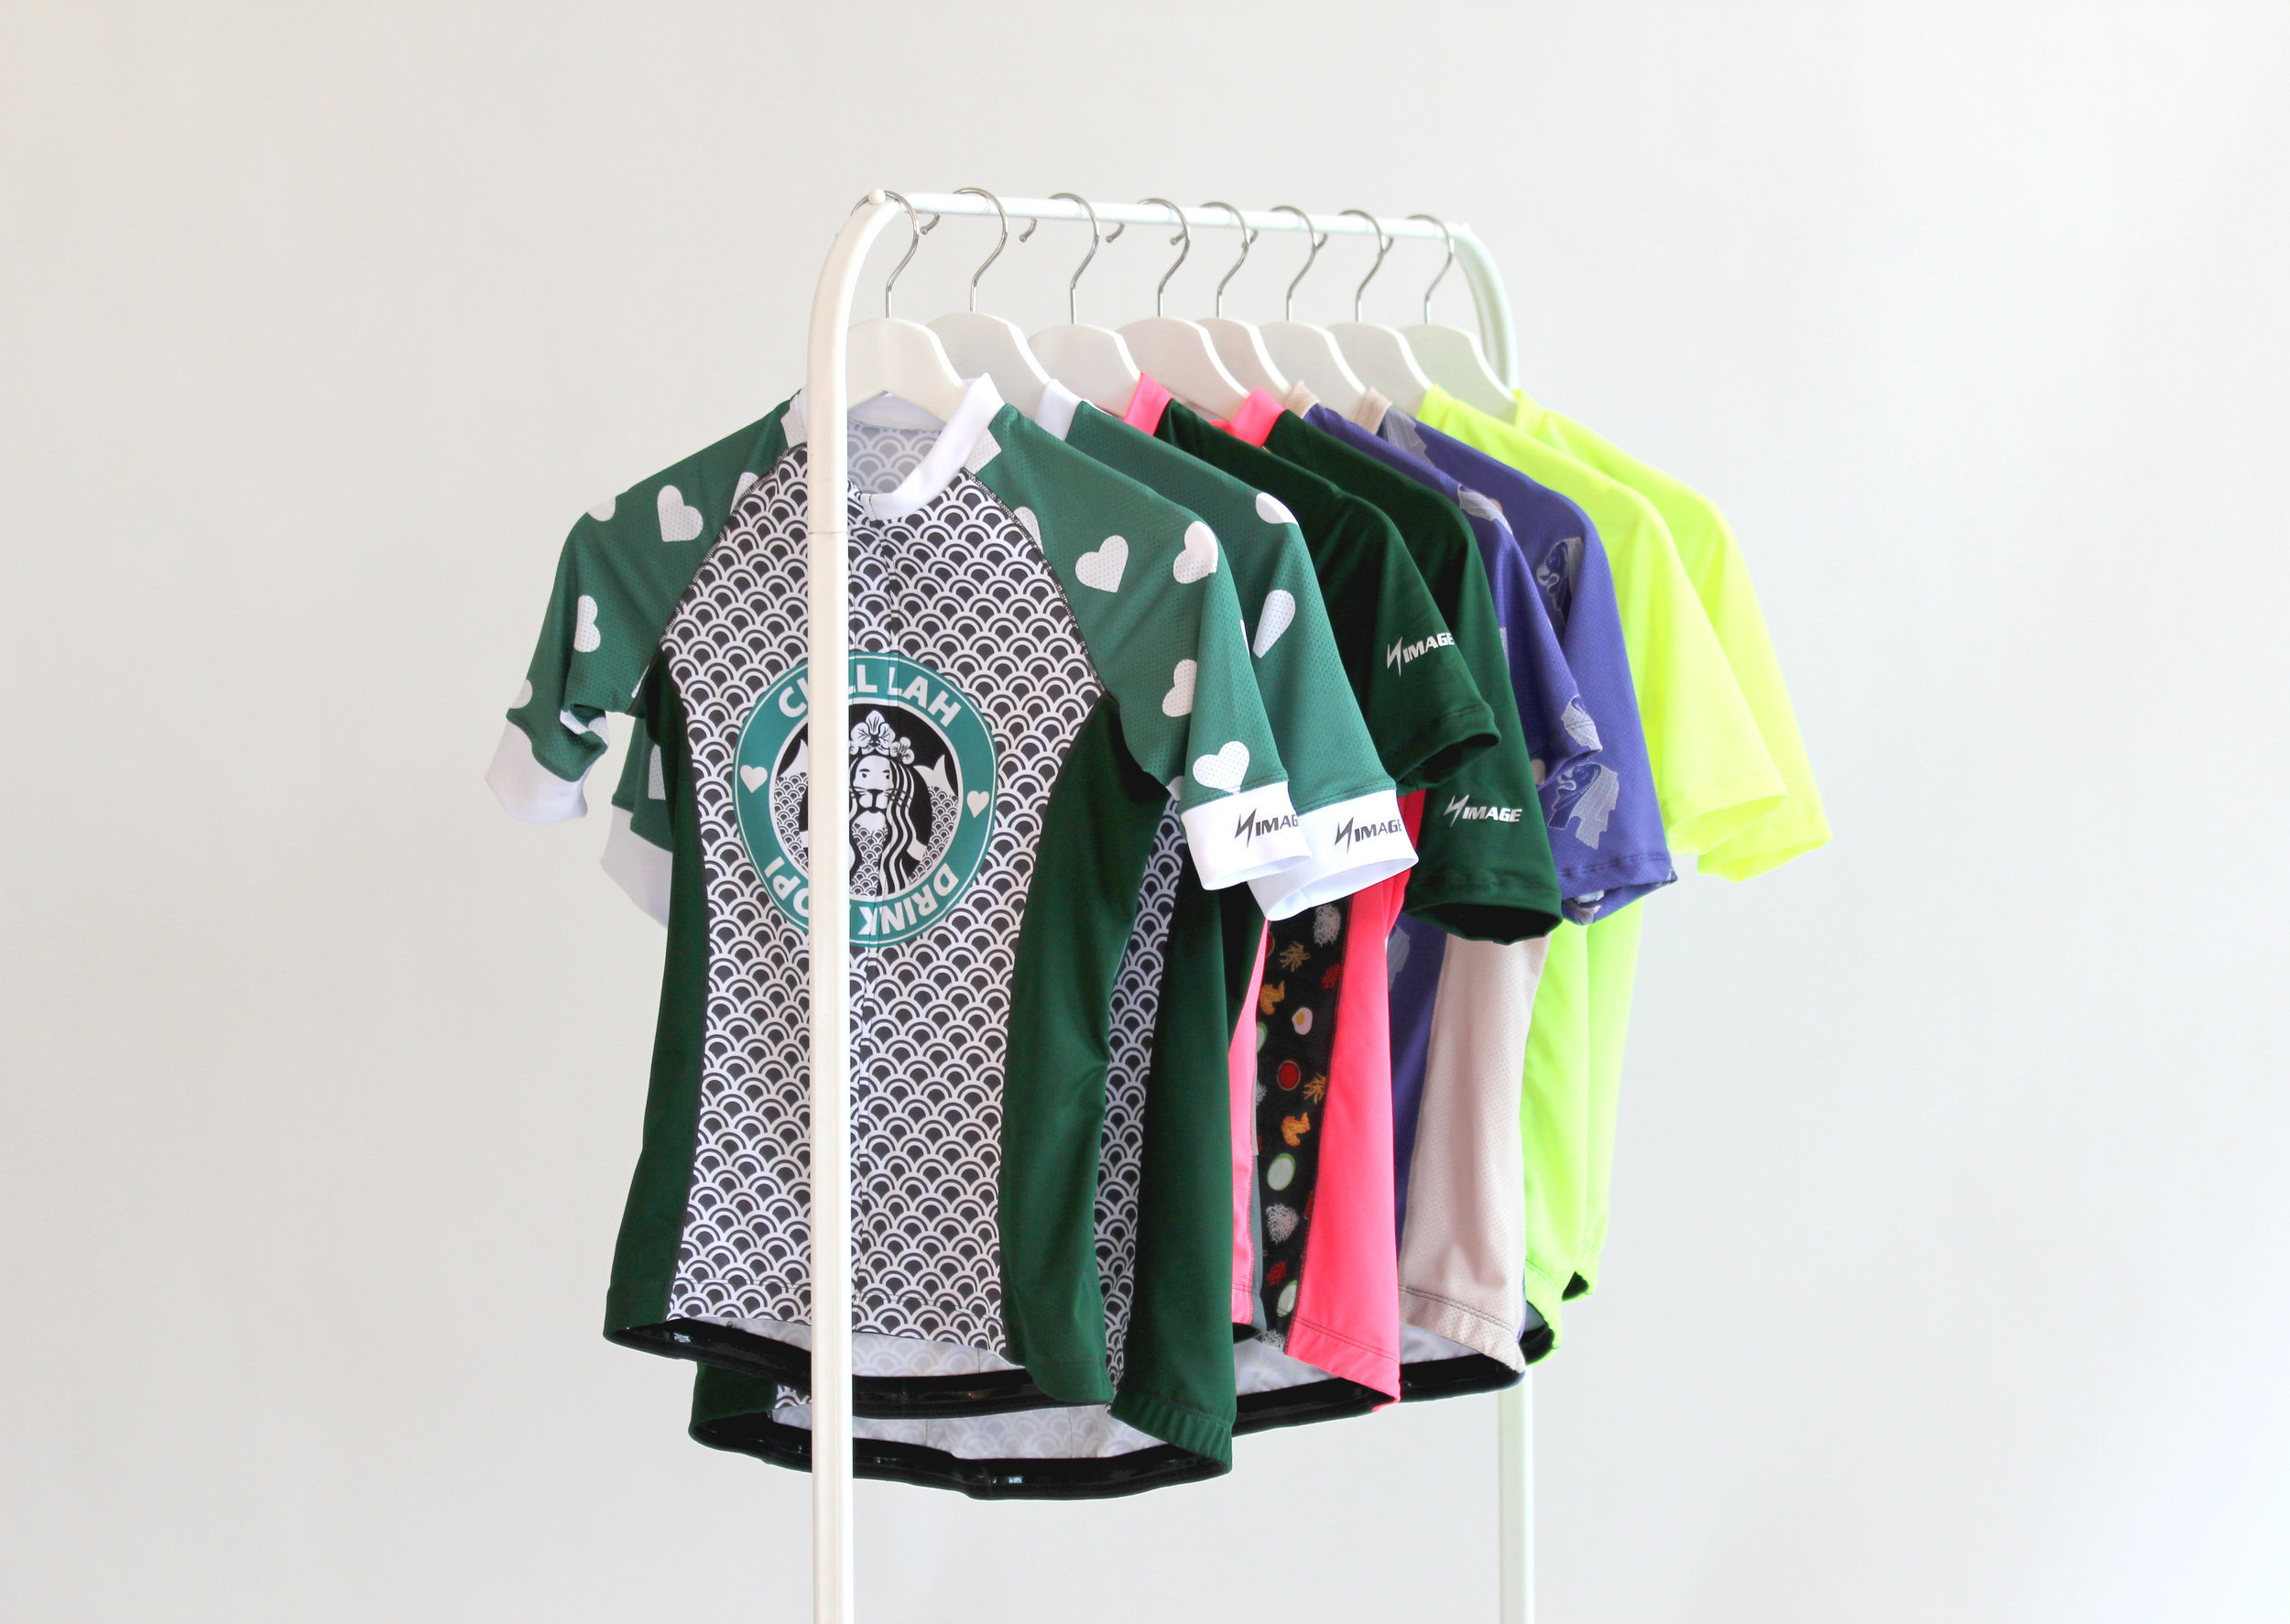 Shop #365 - Cycling jerseys from our 2018 collection.